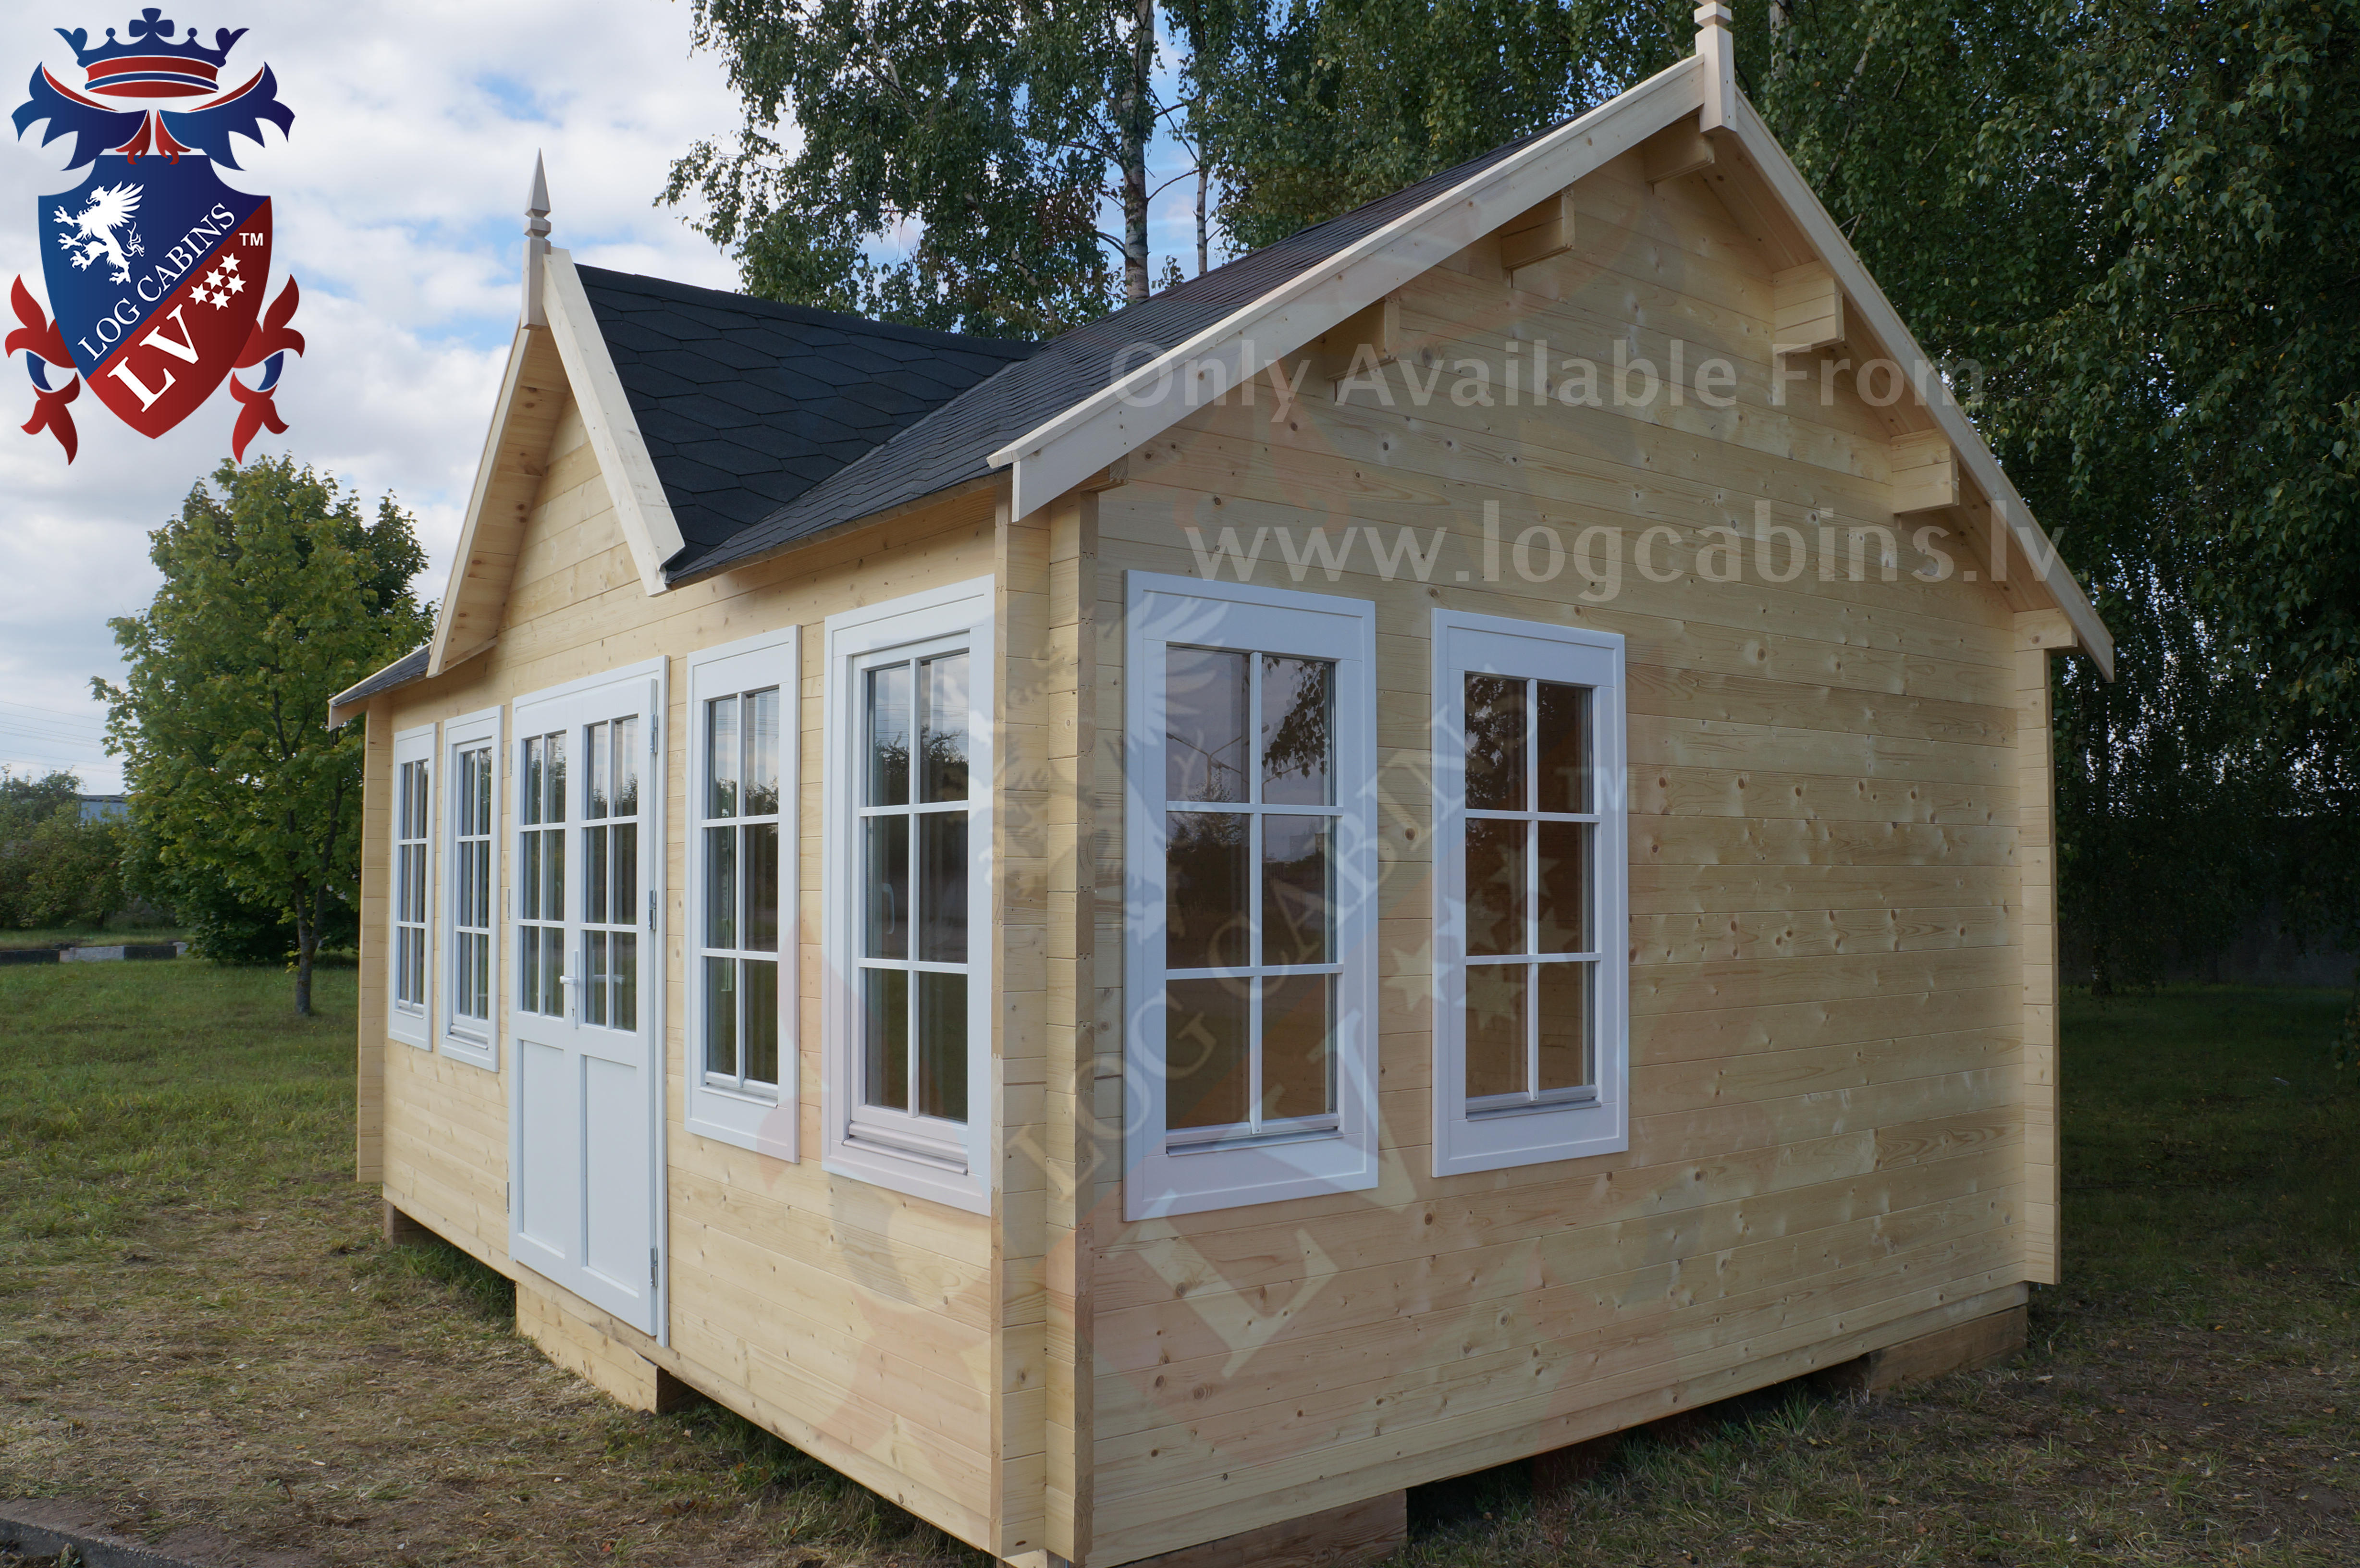 residential windows and doors with all 44mm log cabins and above.